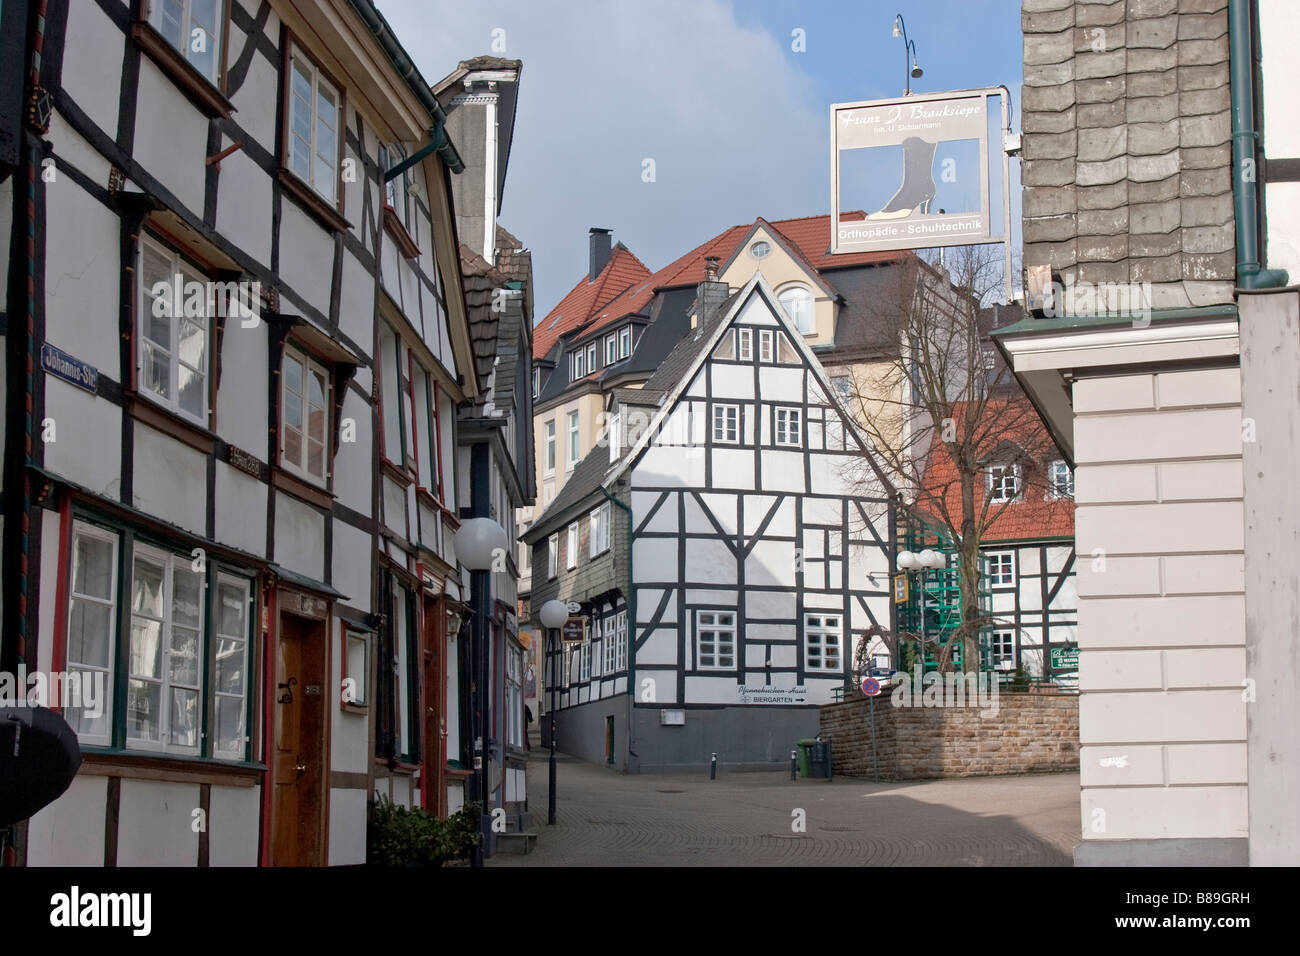 german architecture stock photos german architecture stock images